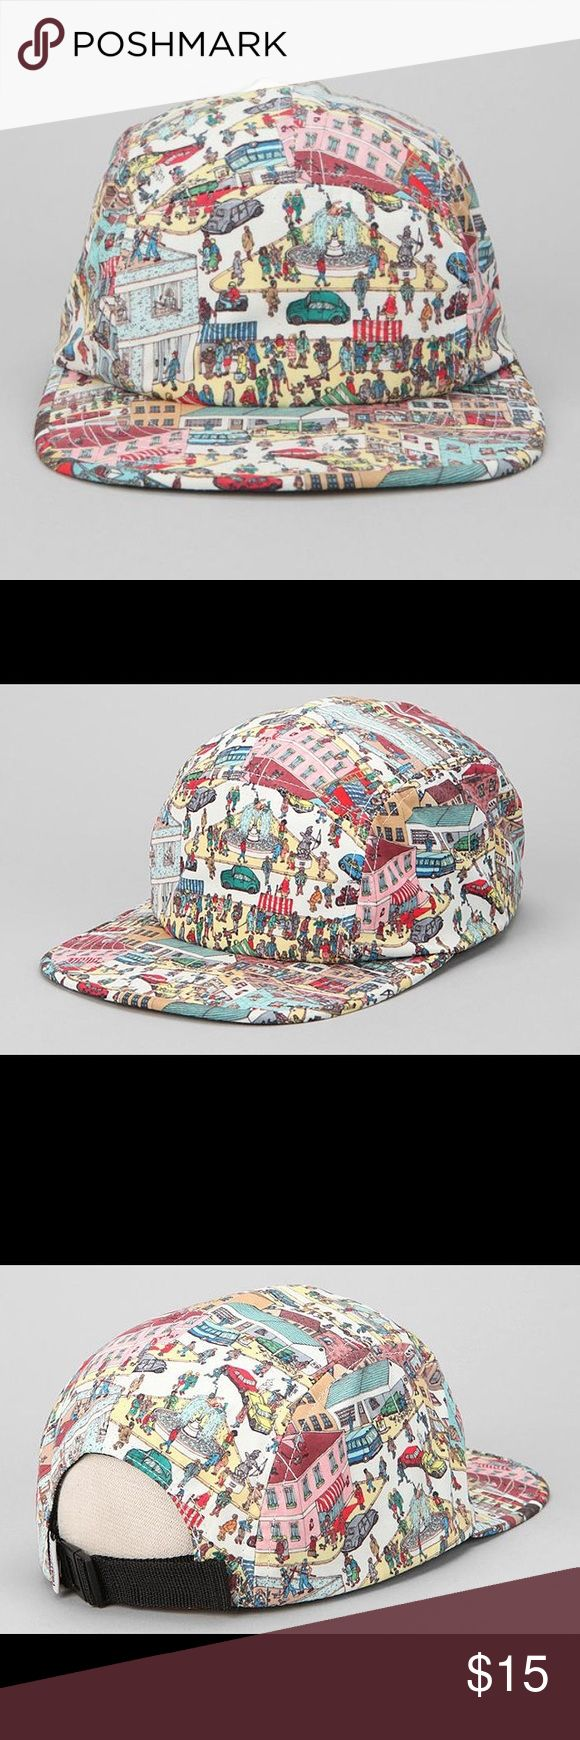 Where's Waldo 5-Panel Cap A unique 5-Panel Where's Waldo Hat. I have gotten lots of compliments from wearing it. Still in good shape and it has barely been worn. Urban Outfitters Accessories Hats